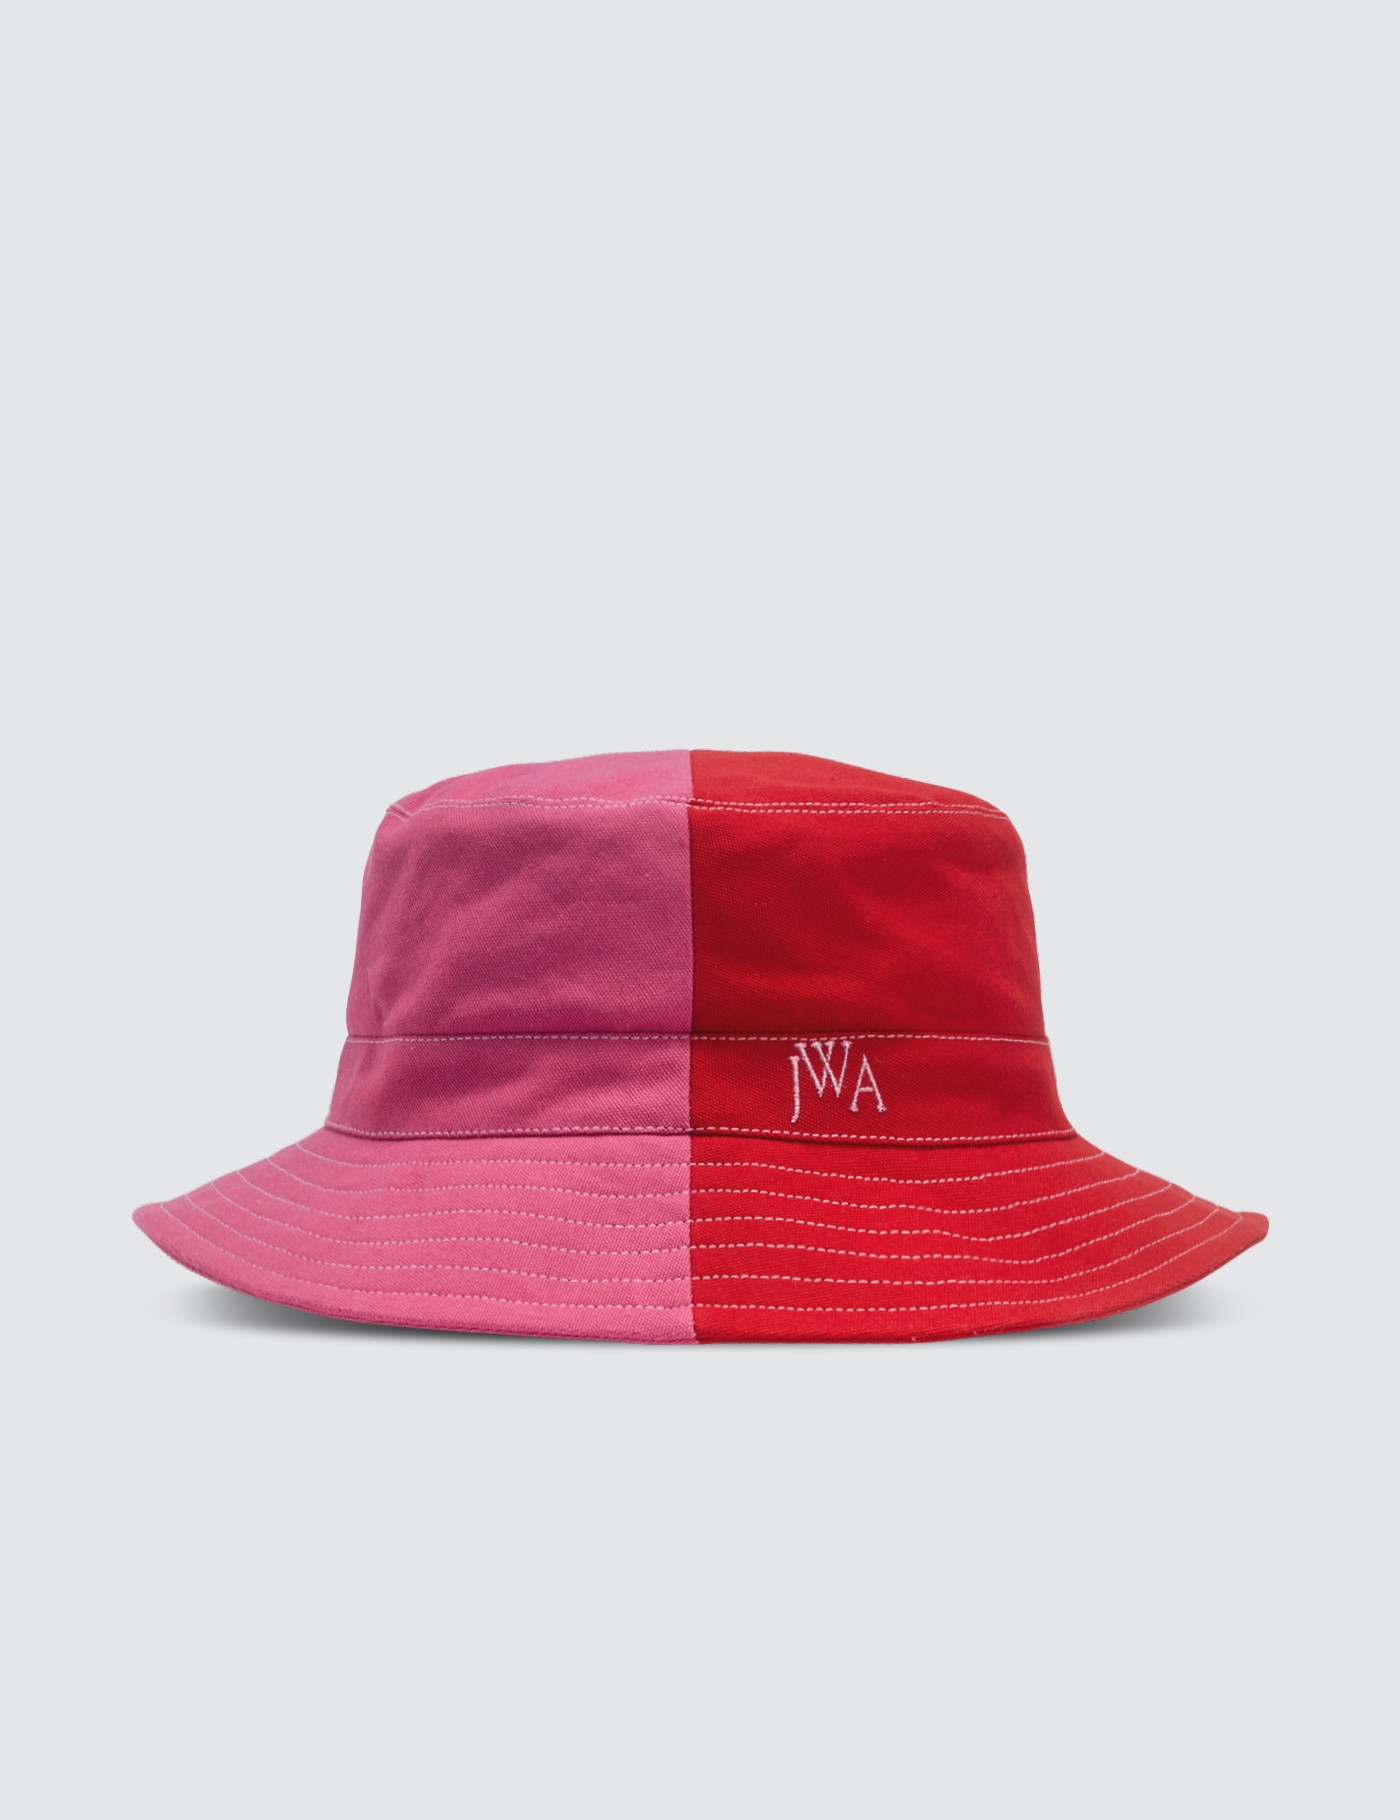 57caae4e ... Hat; JW Anderson HBX Exclusive Red & Pink Colorblocked Bucket ...